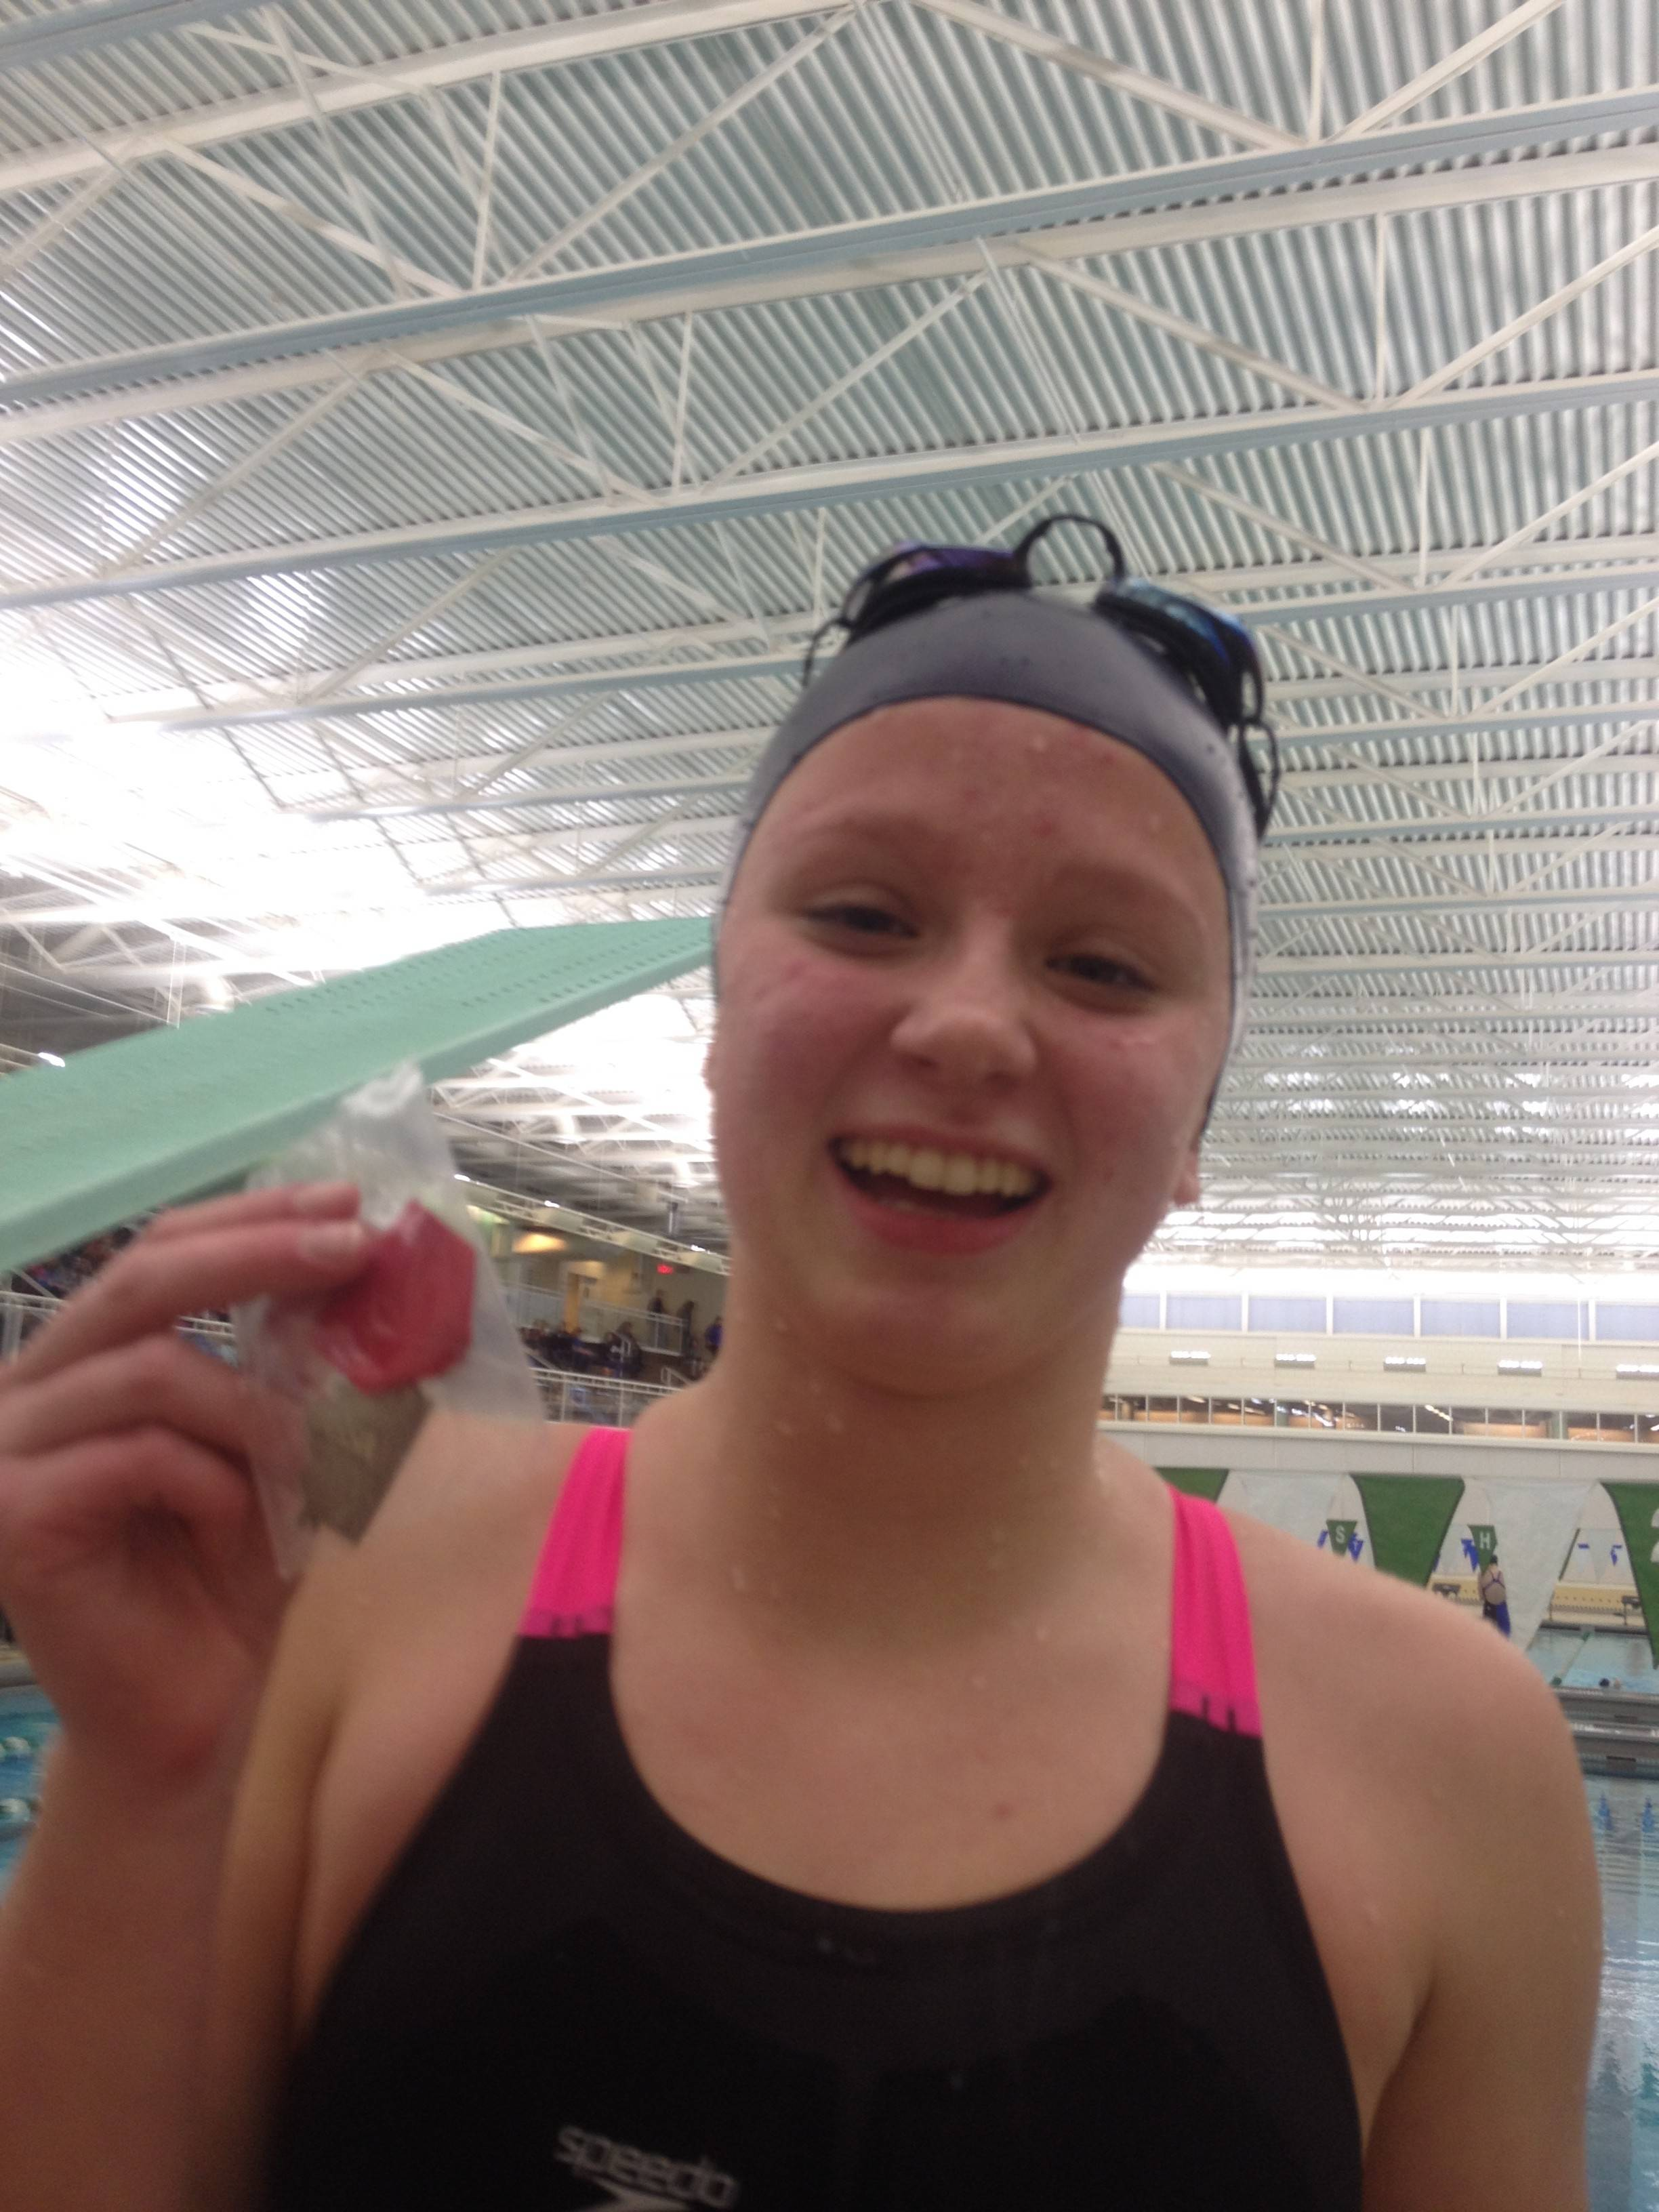 Cary-Grove senior Melissa Rose earned a fourth straight trip to the state meet with a second-place finish in the 100-yard breastroke during Saturday's sectional meet at Stevenson.